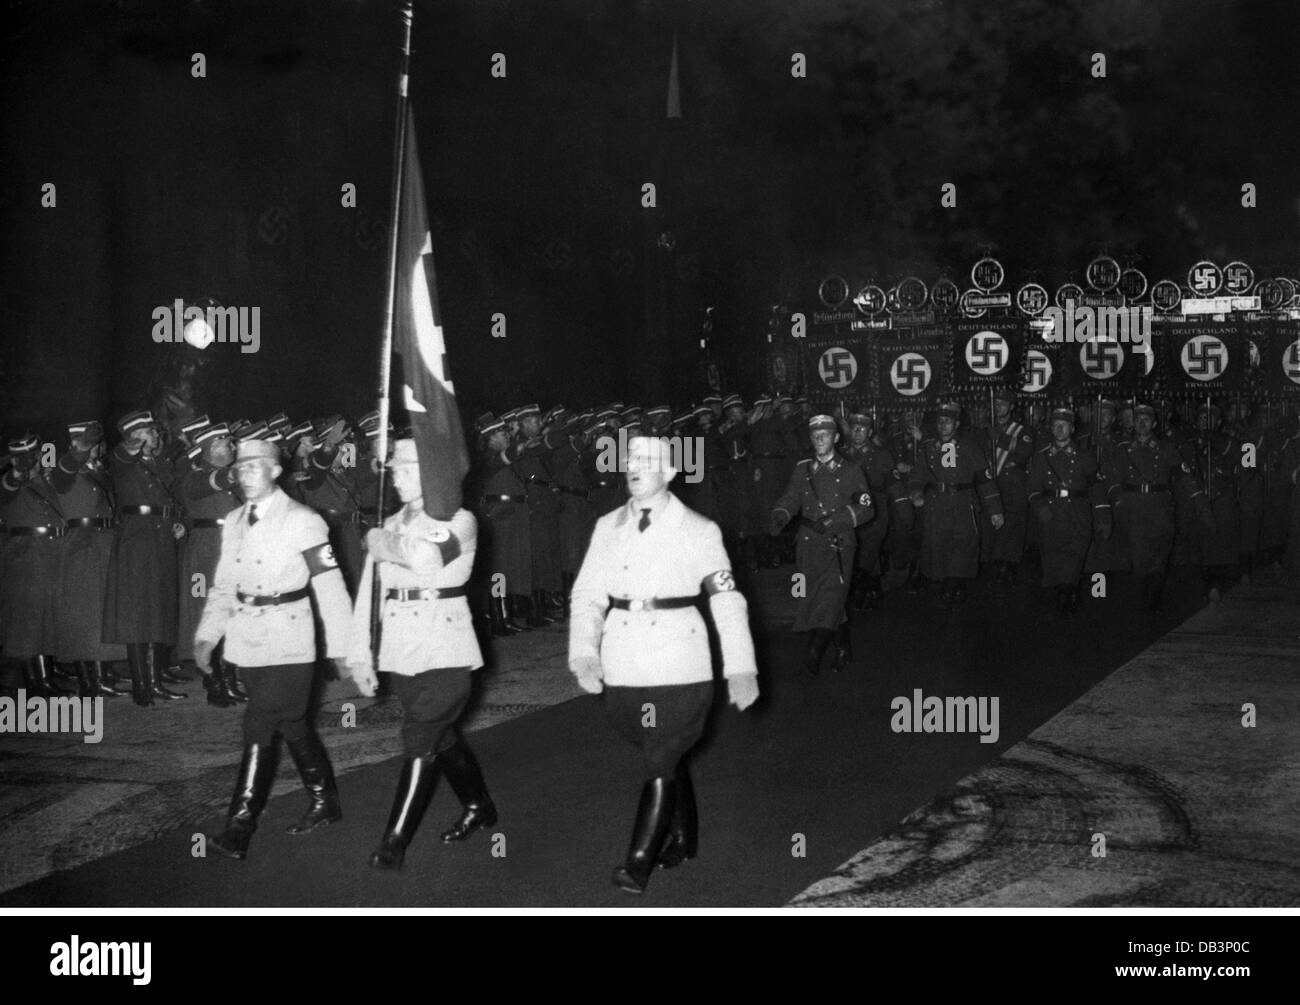 National Socialism, organisations, Sturmabteilung (SA), parade in reminiscence of the 'March to Feldherrnhalle' - Stock Image